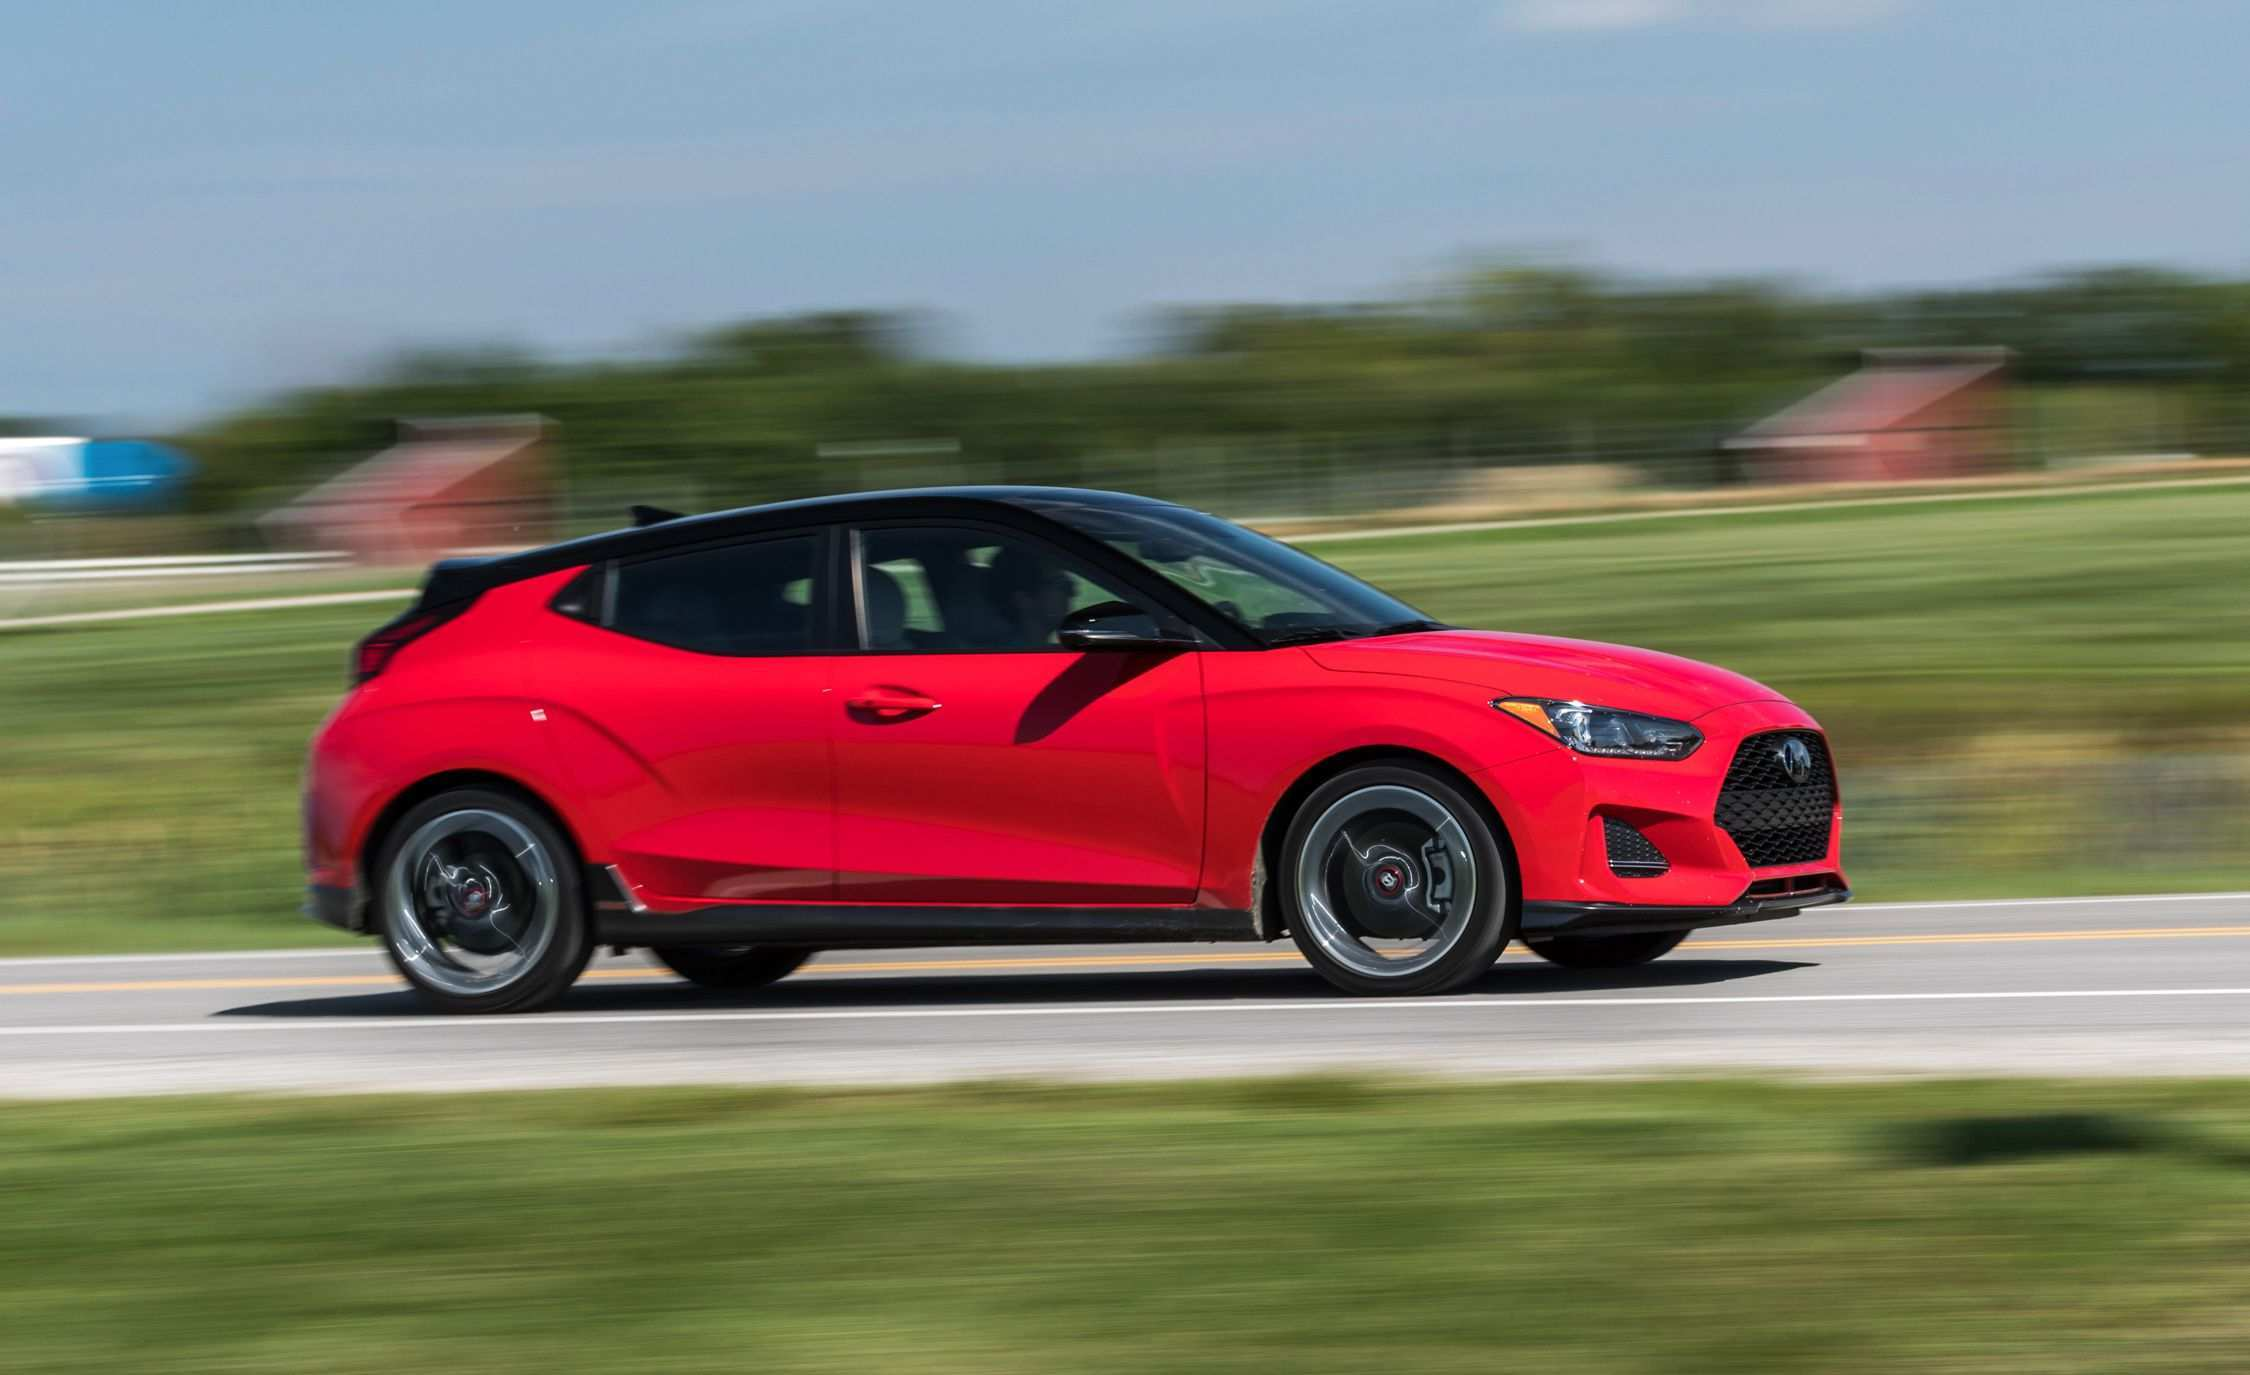 78 Best Review 2019 Hyundai Veloster Review New Concept by 2019 Hyundai Veloster Review